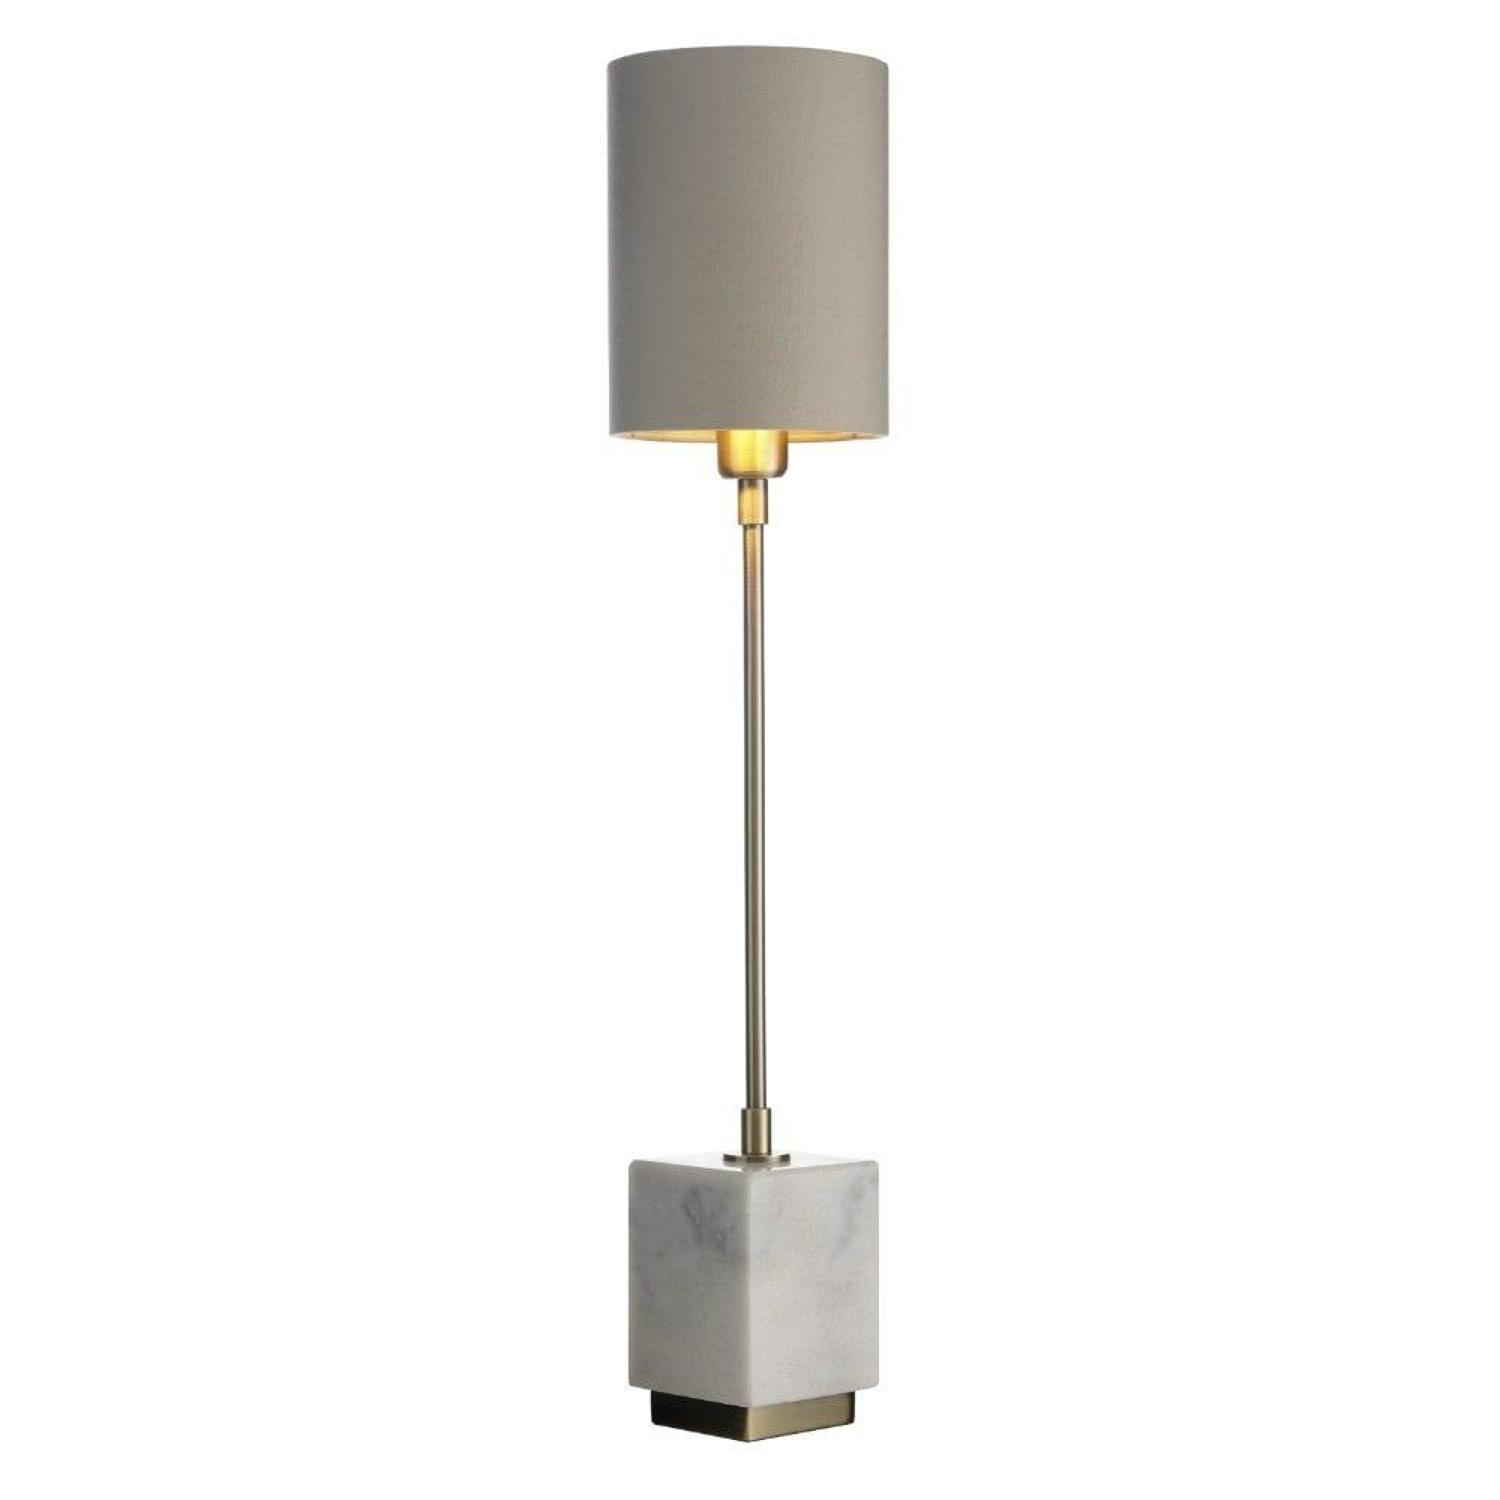 Tall, thin antique brass lamp with white marble base and neutral shade